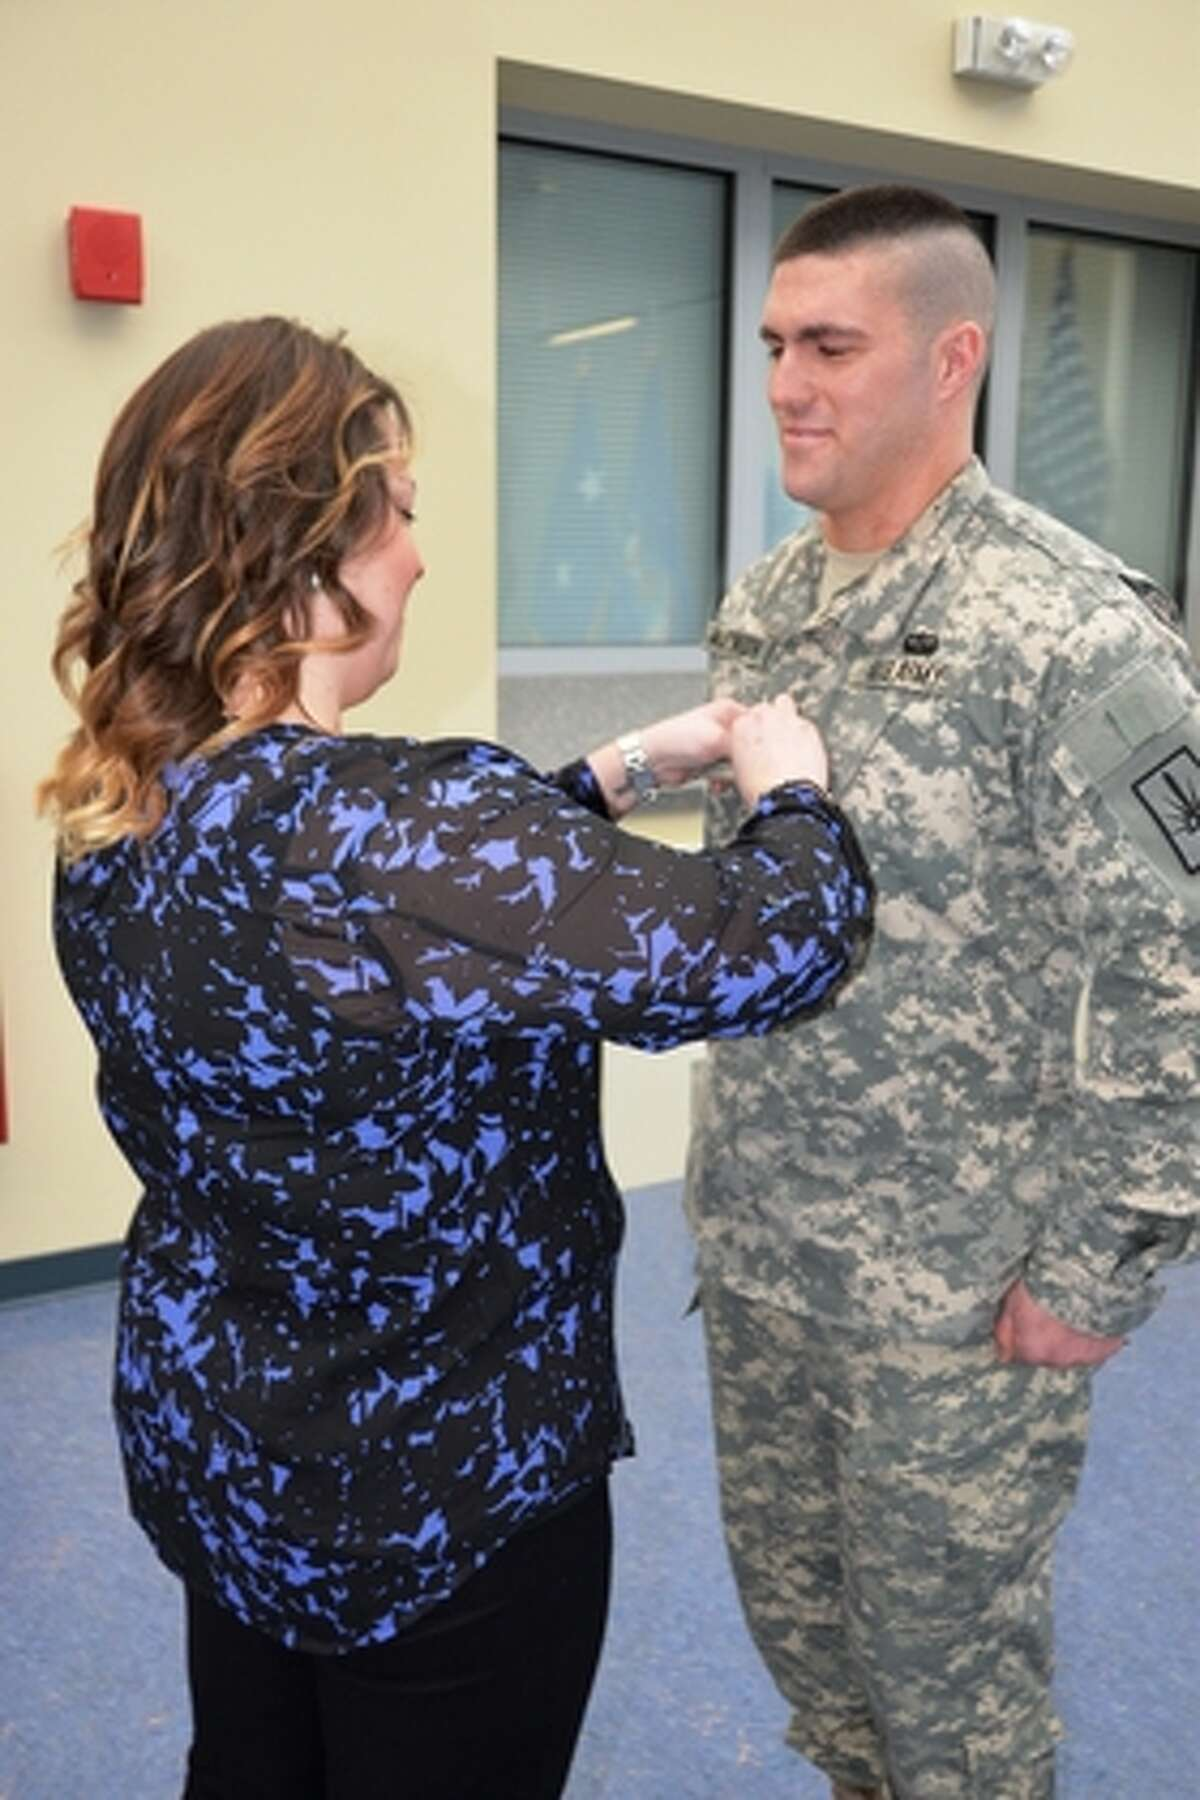 New York Army National Guard Wife Ashley Martinsen places new sergeant first class rank insignias on David Martinsen during promotion ceremony at New York Army National Guard Headquarters in Latham.